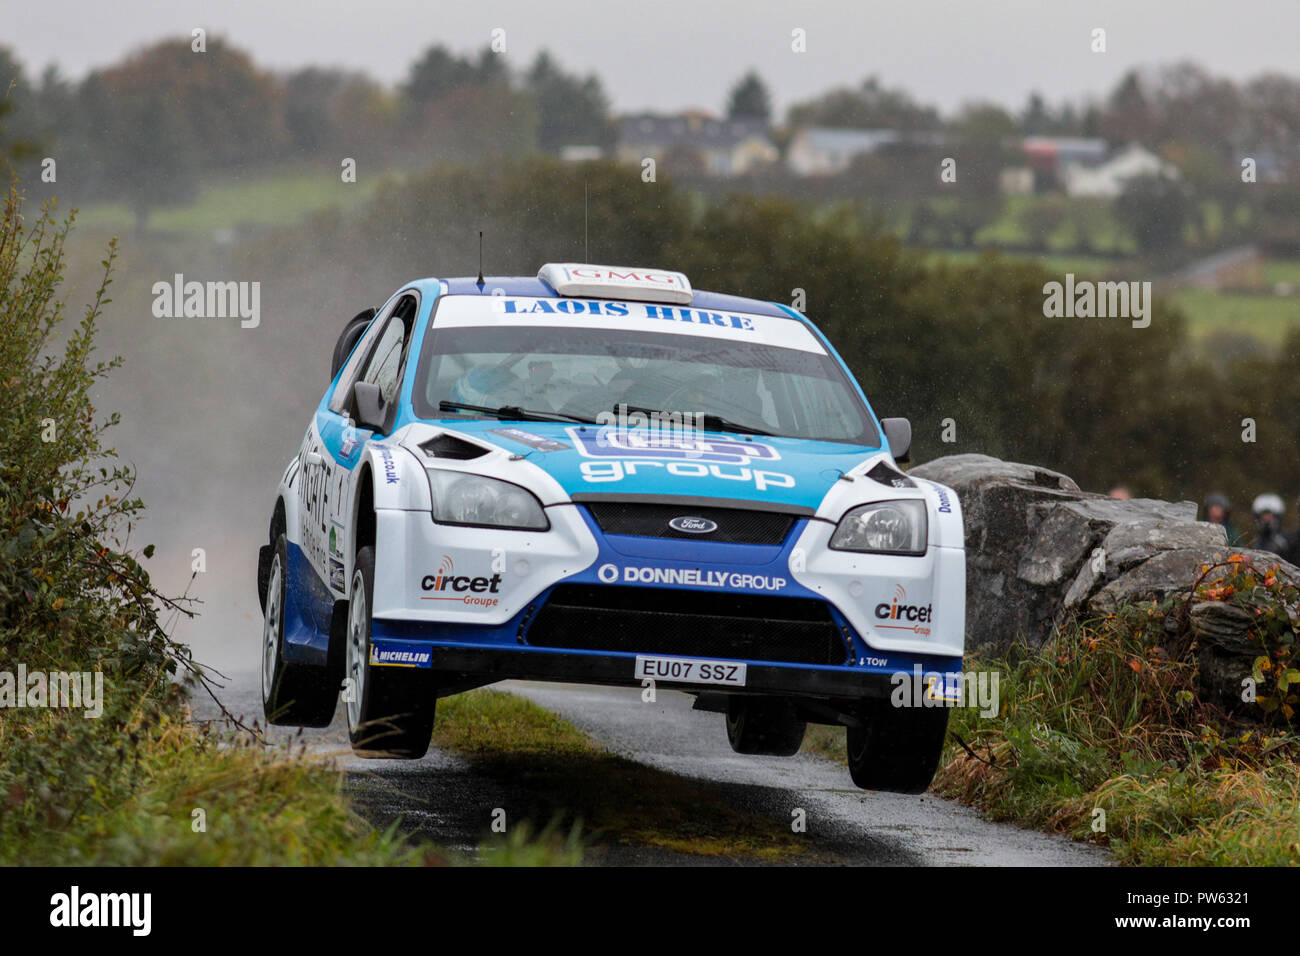 Ford Focus Wrc Stock Photos Ford Focus Wrc Stock Images Alamy